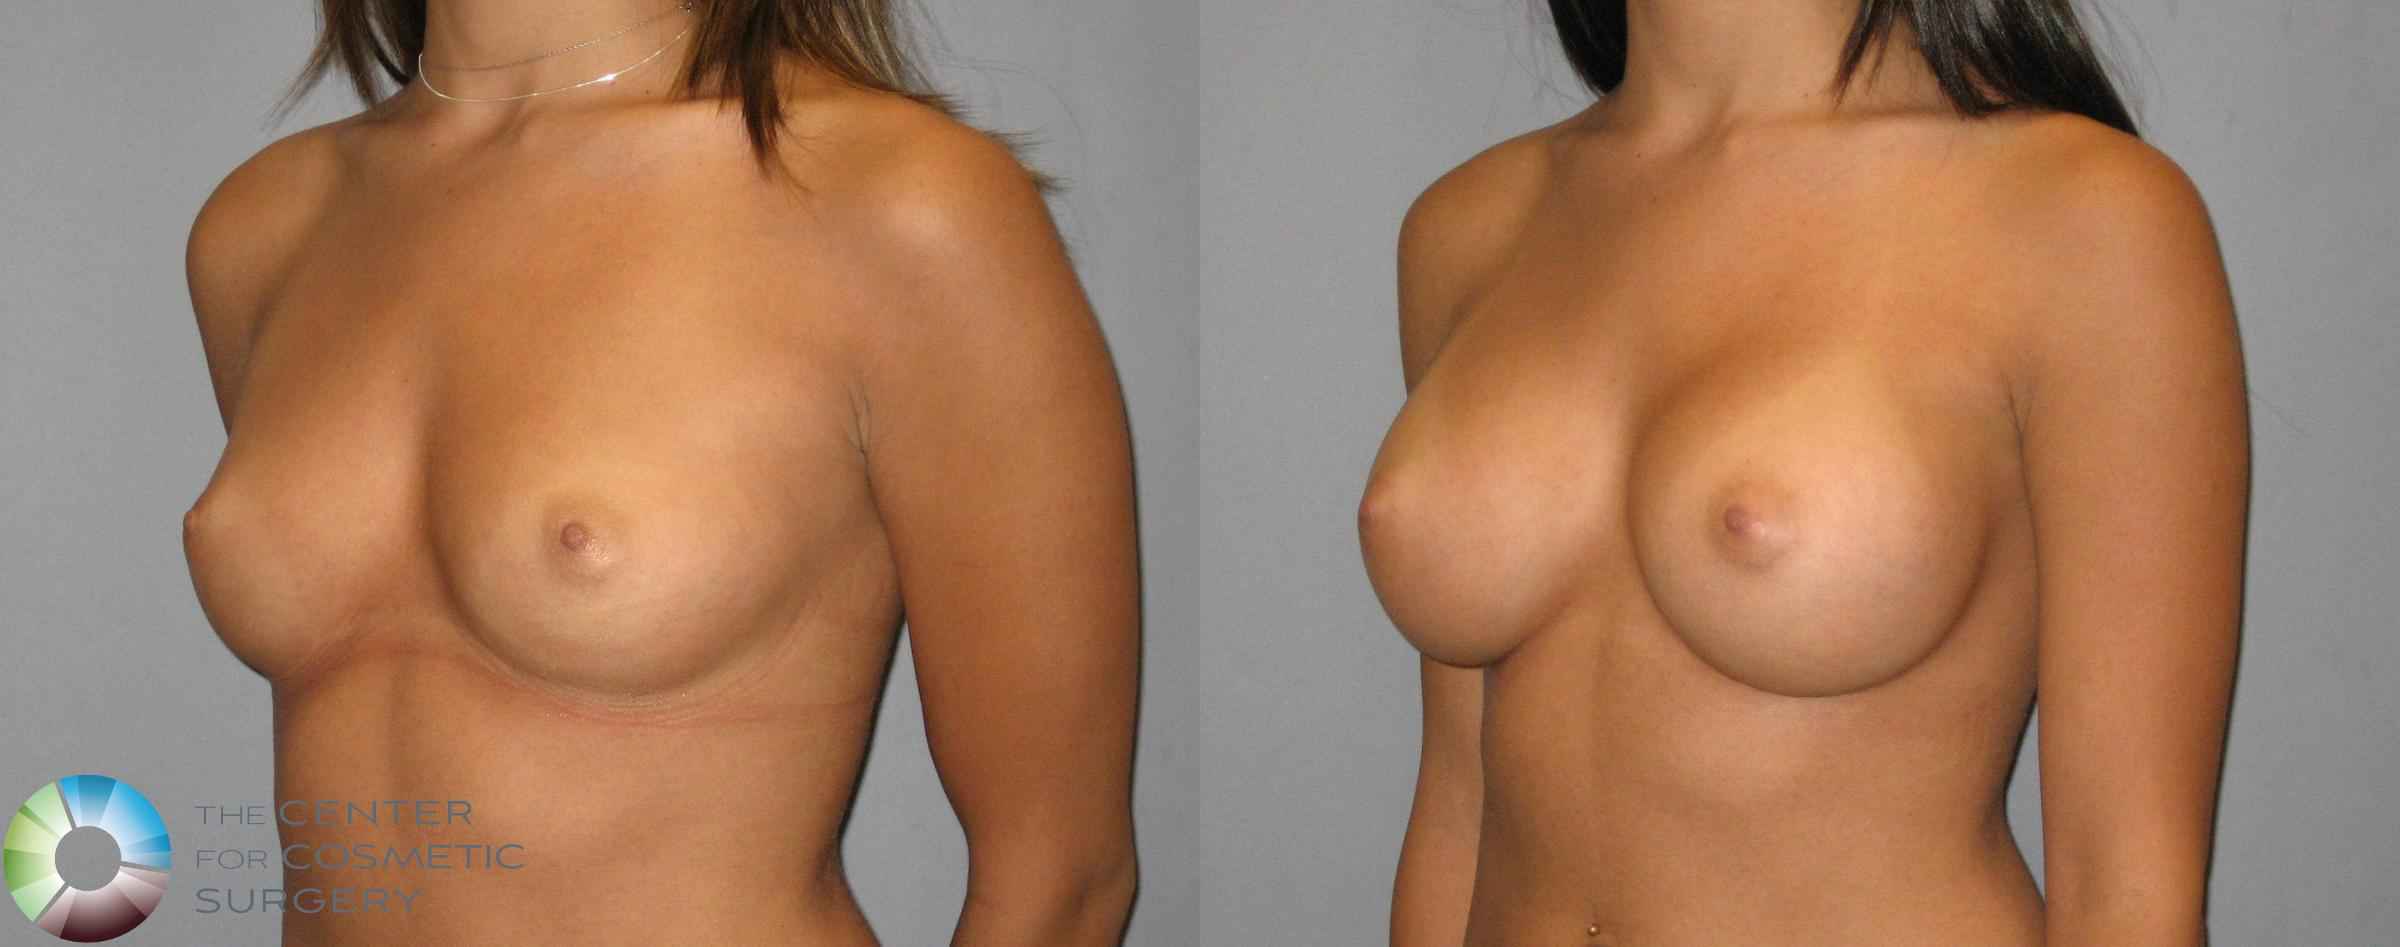 Breast Augmentation Case 318 Before & After View #2 | Golden, CO | The Center for Cosmetic Surgery